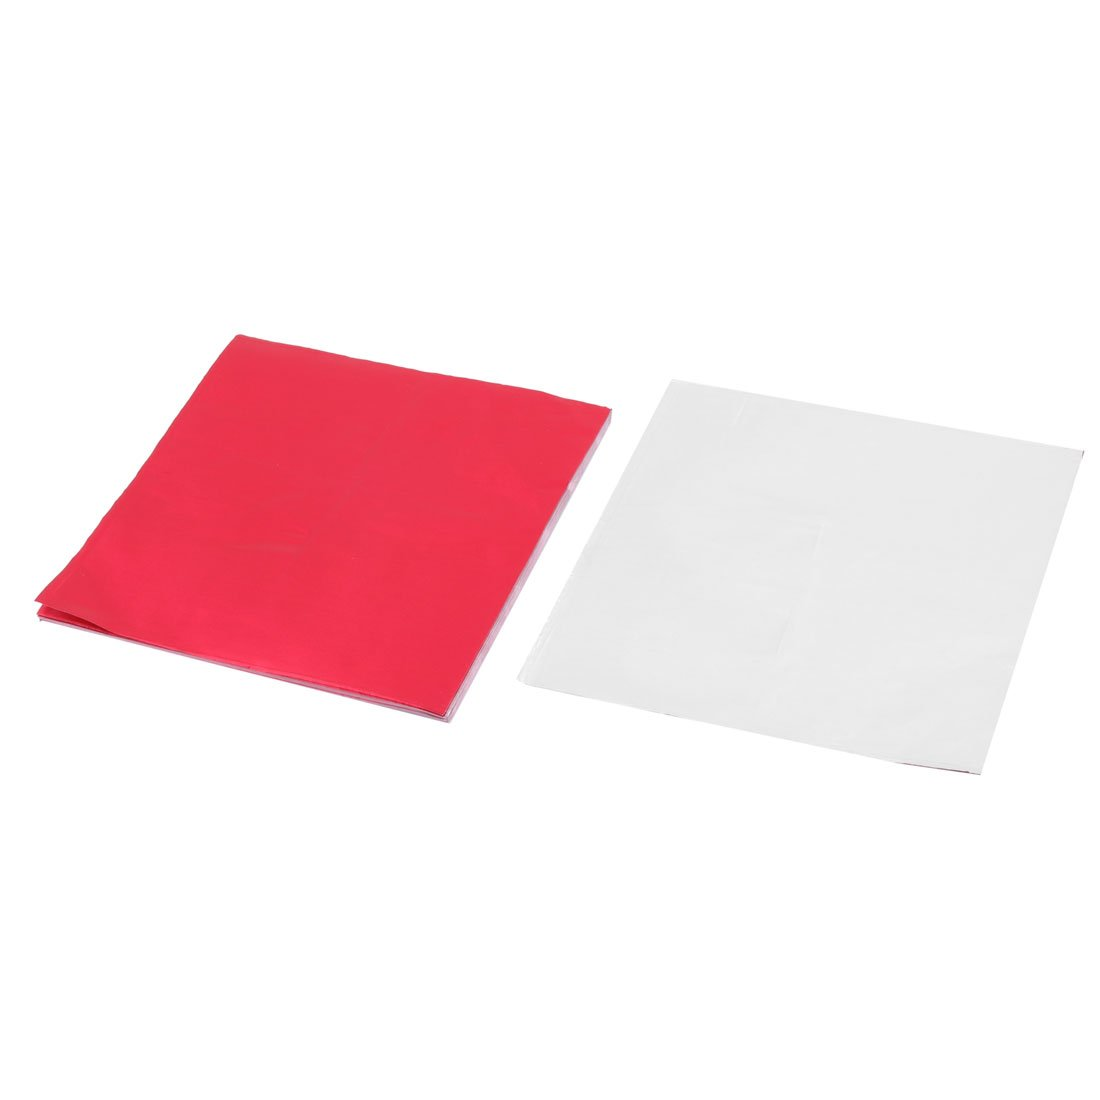 sourcingmap® Aluminum Foil Kitchen Disposable Candy Chocolate Wrapper 4 x 4 Inch 100pcs Red a17041100ux0314